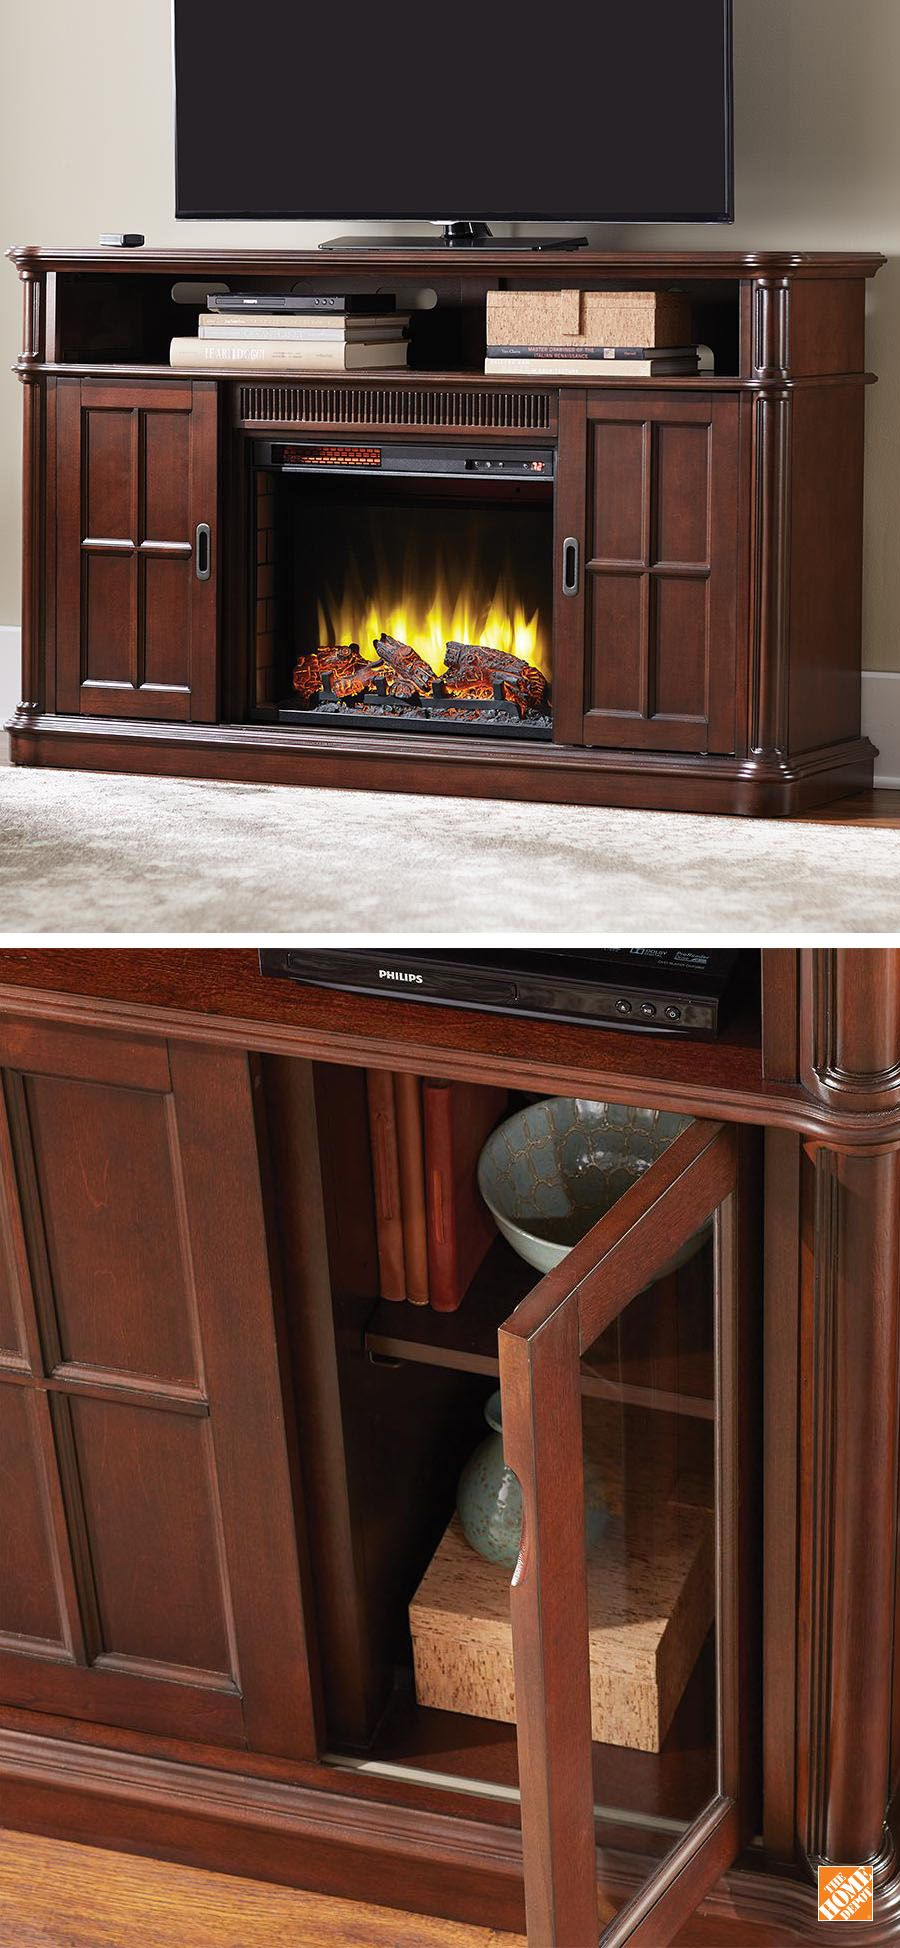 Check Out This Beautiful Jamerson Manor Fireplace It